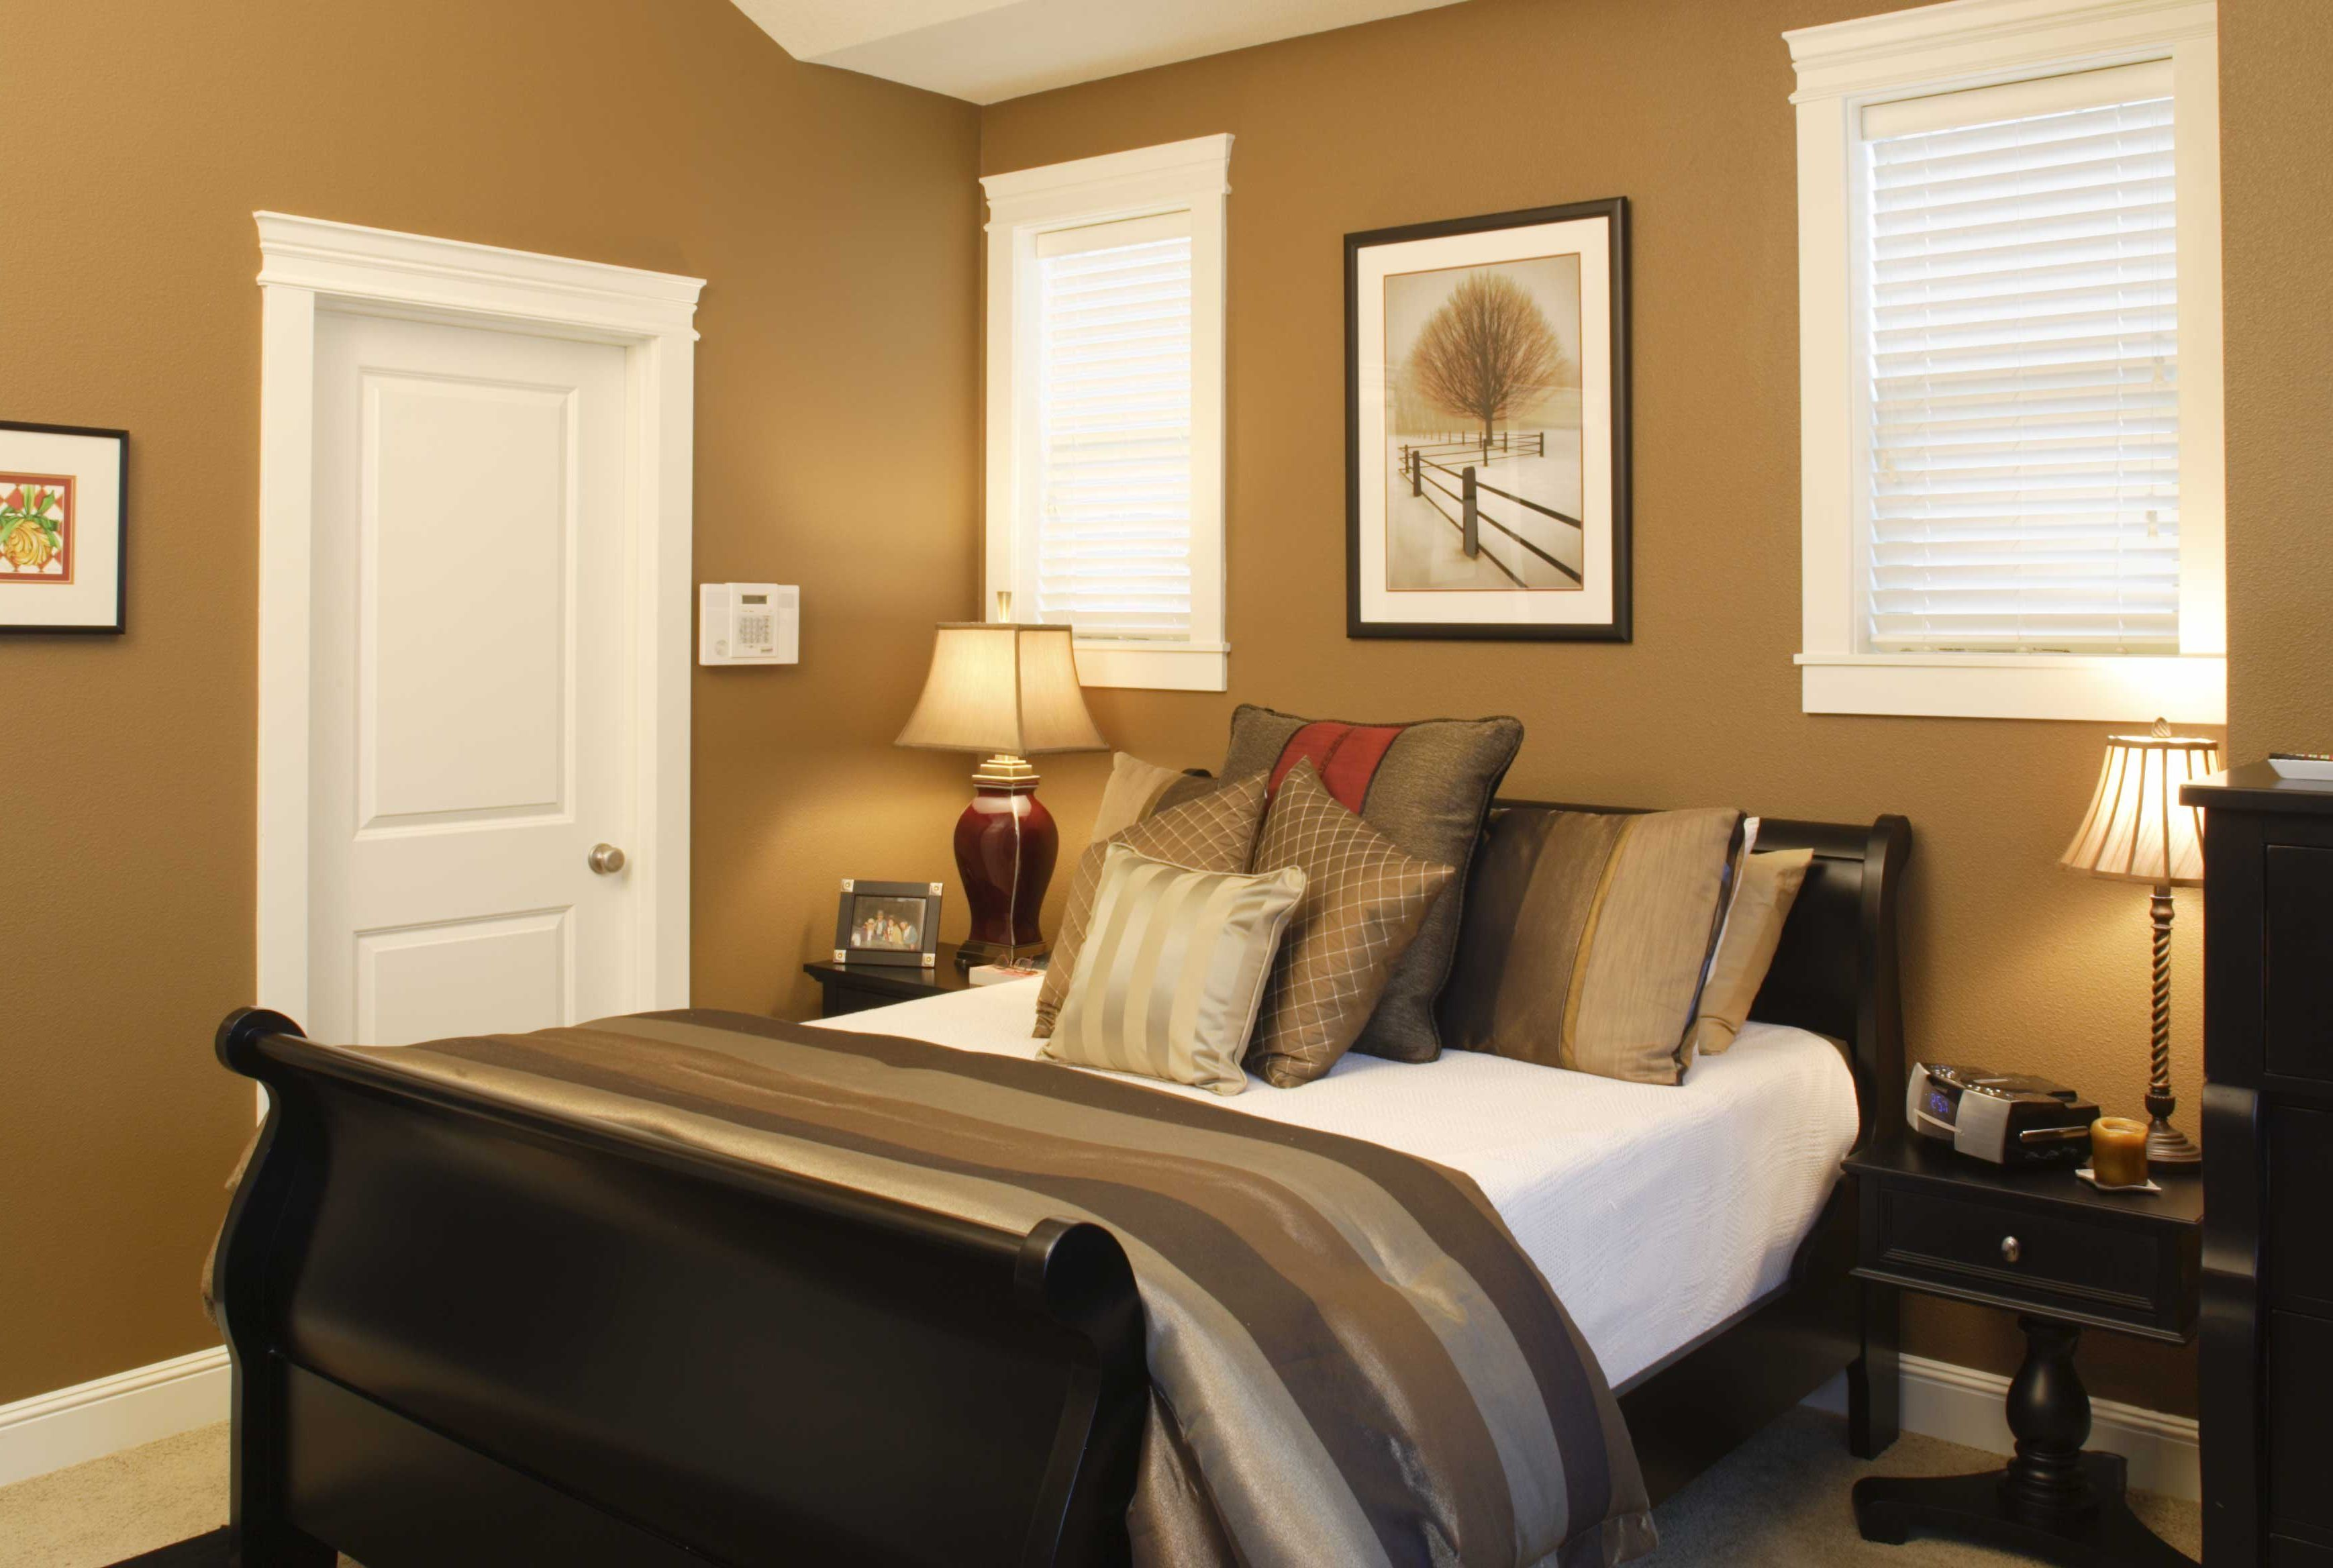 Exceptionnel Bedroom Paint Colors Wonderful Nice Bedroom Colors Earth Tone Bedroom In  Paint Colors For Bedrooms